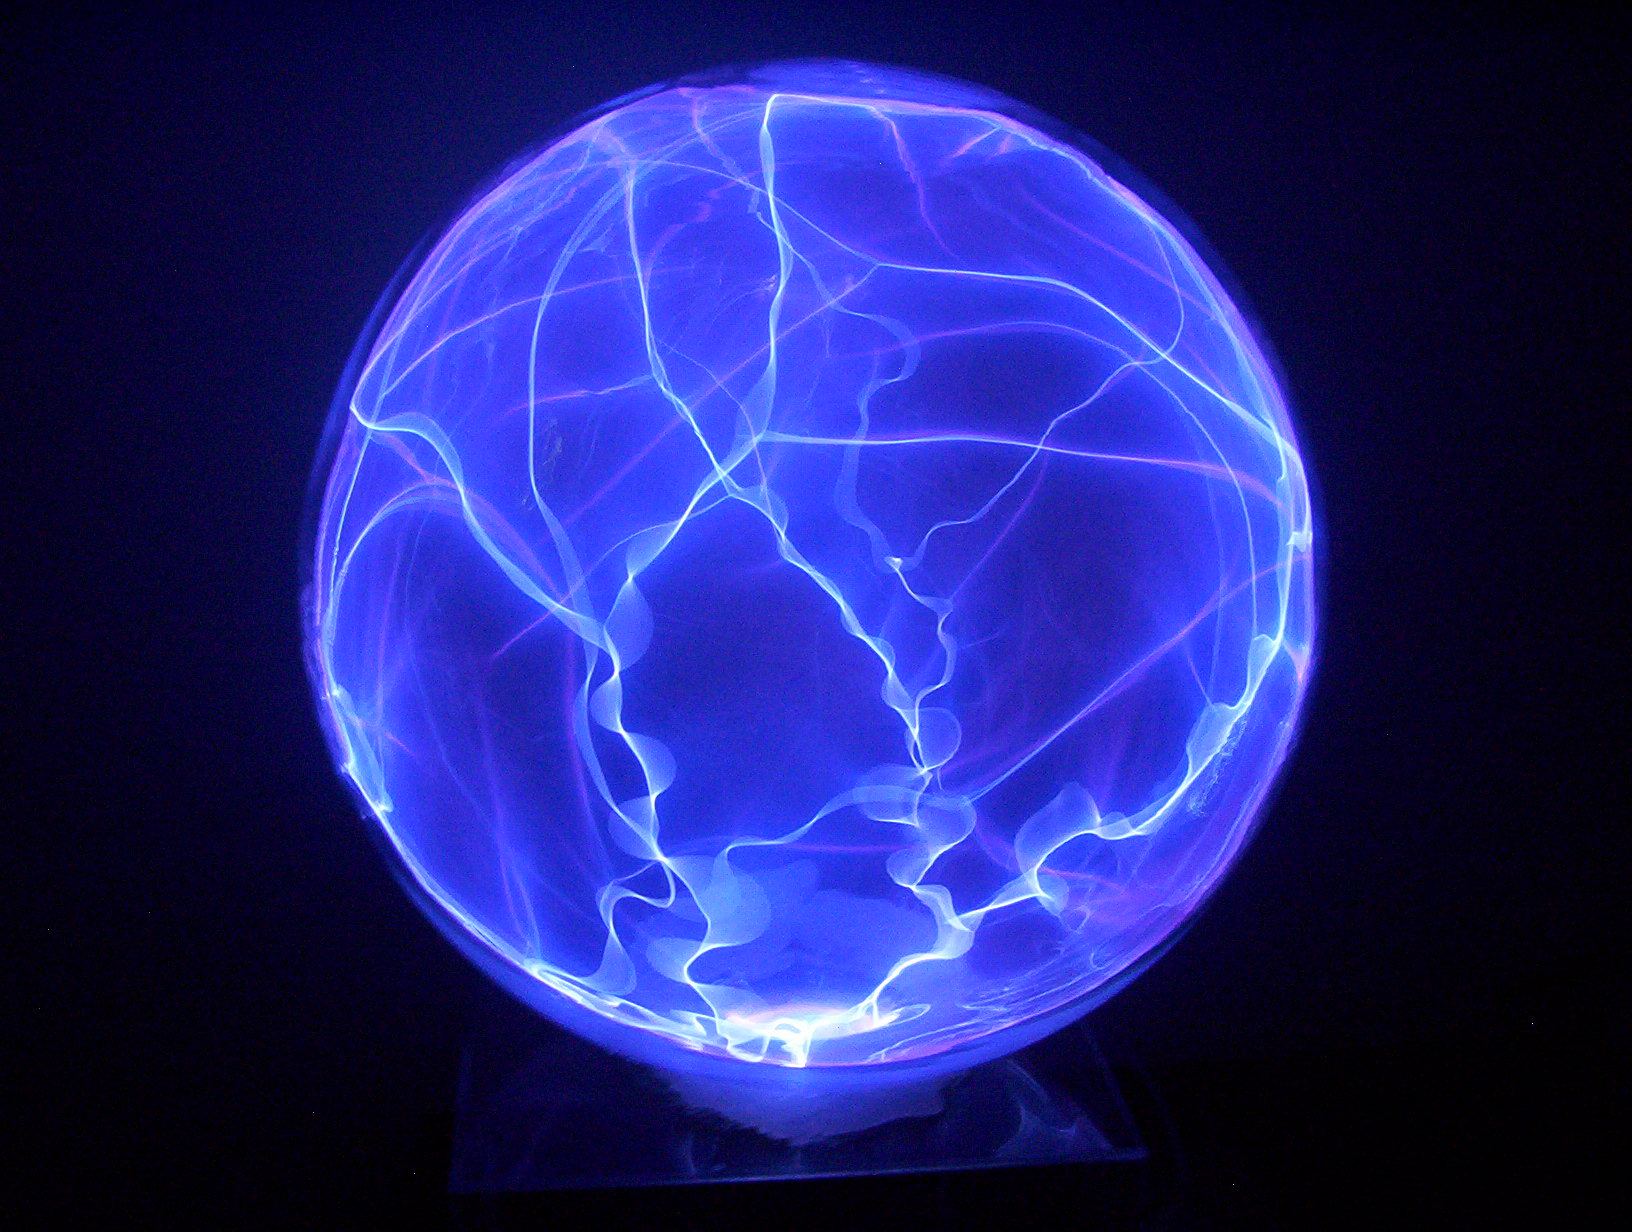 File:Glass plasma globe.jpg - Wikimedia Commons